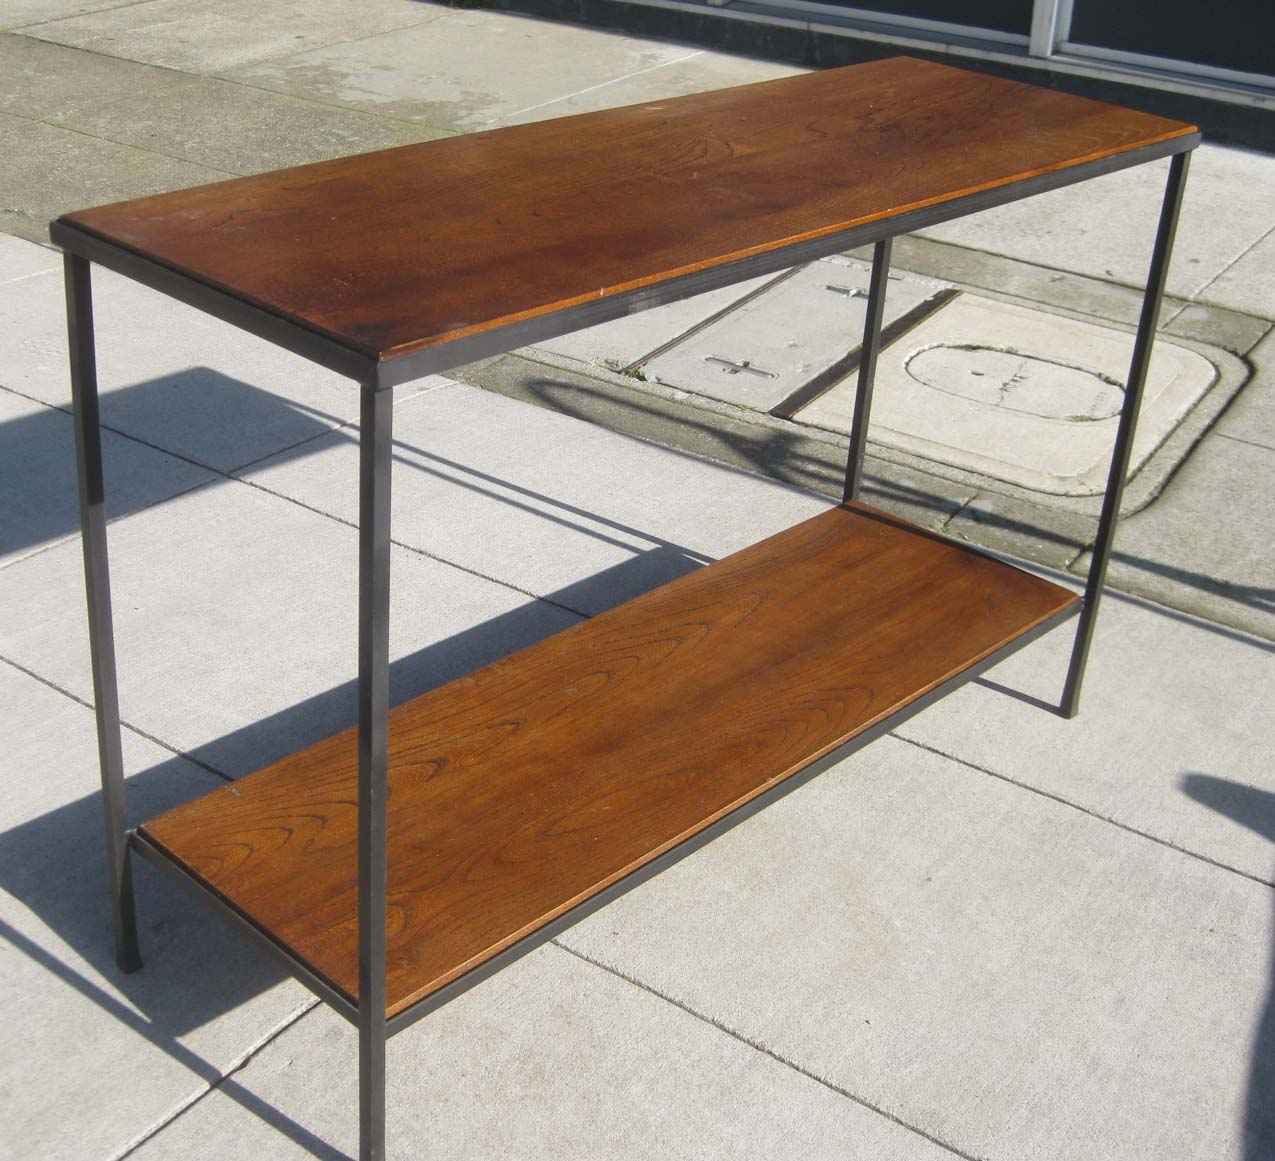 Uhuru furniture collectibles sold sofa table 70 for Sofa table 70